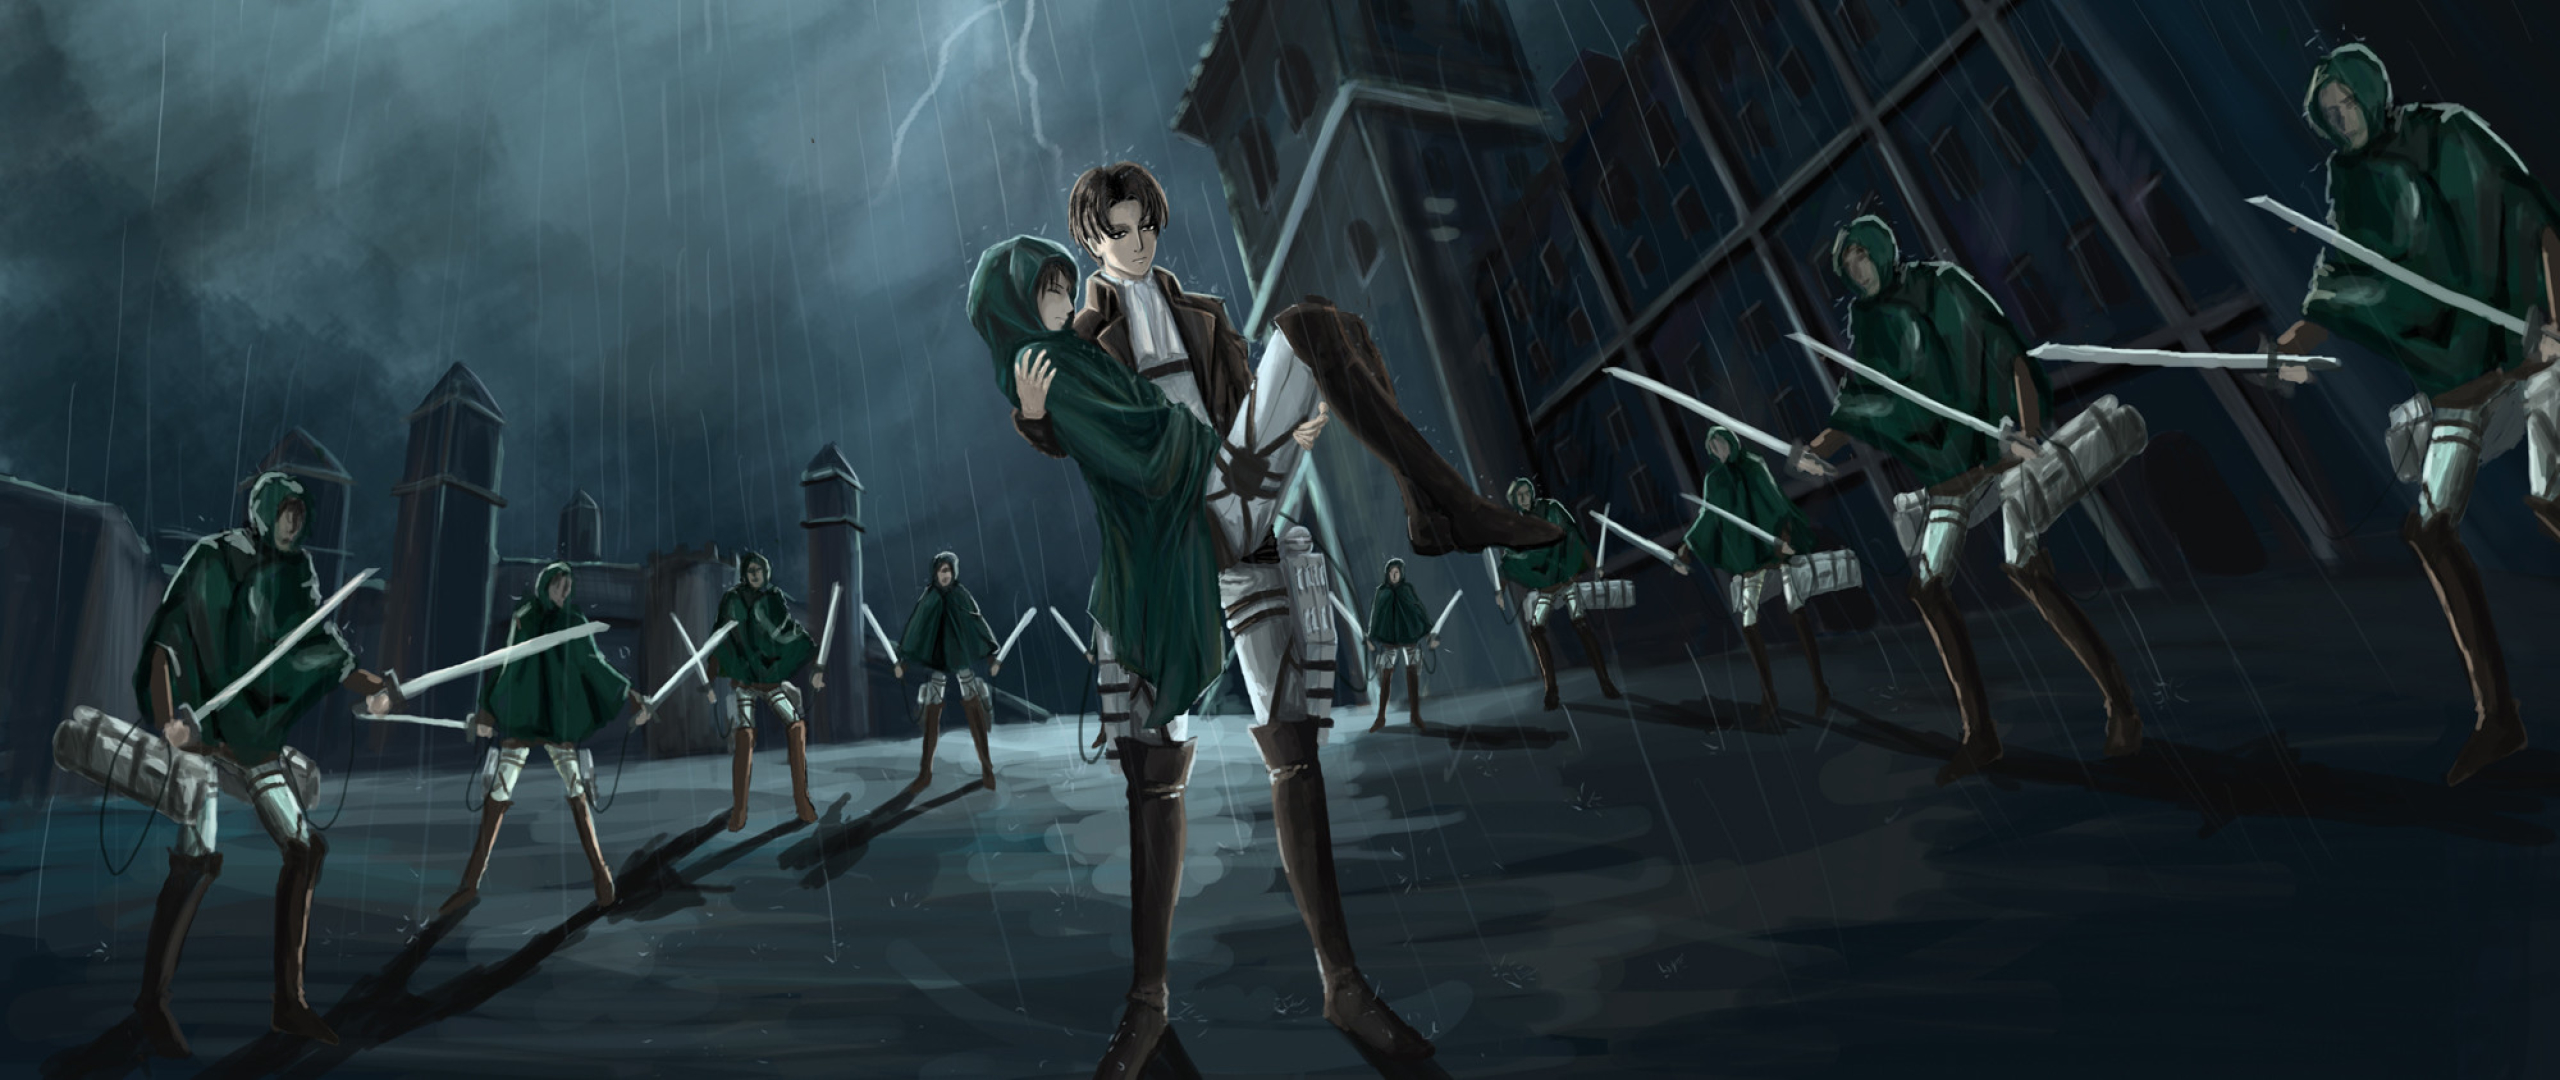 2560x1080 Levi Ackerman Aot 2560x1080 Resolution Wallpaper Hd Anime 4k Wallpapers Images Photos And Background